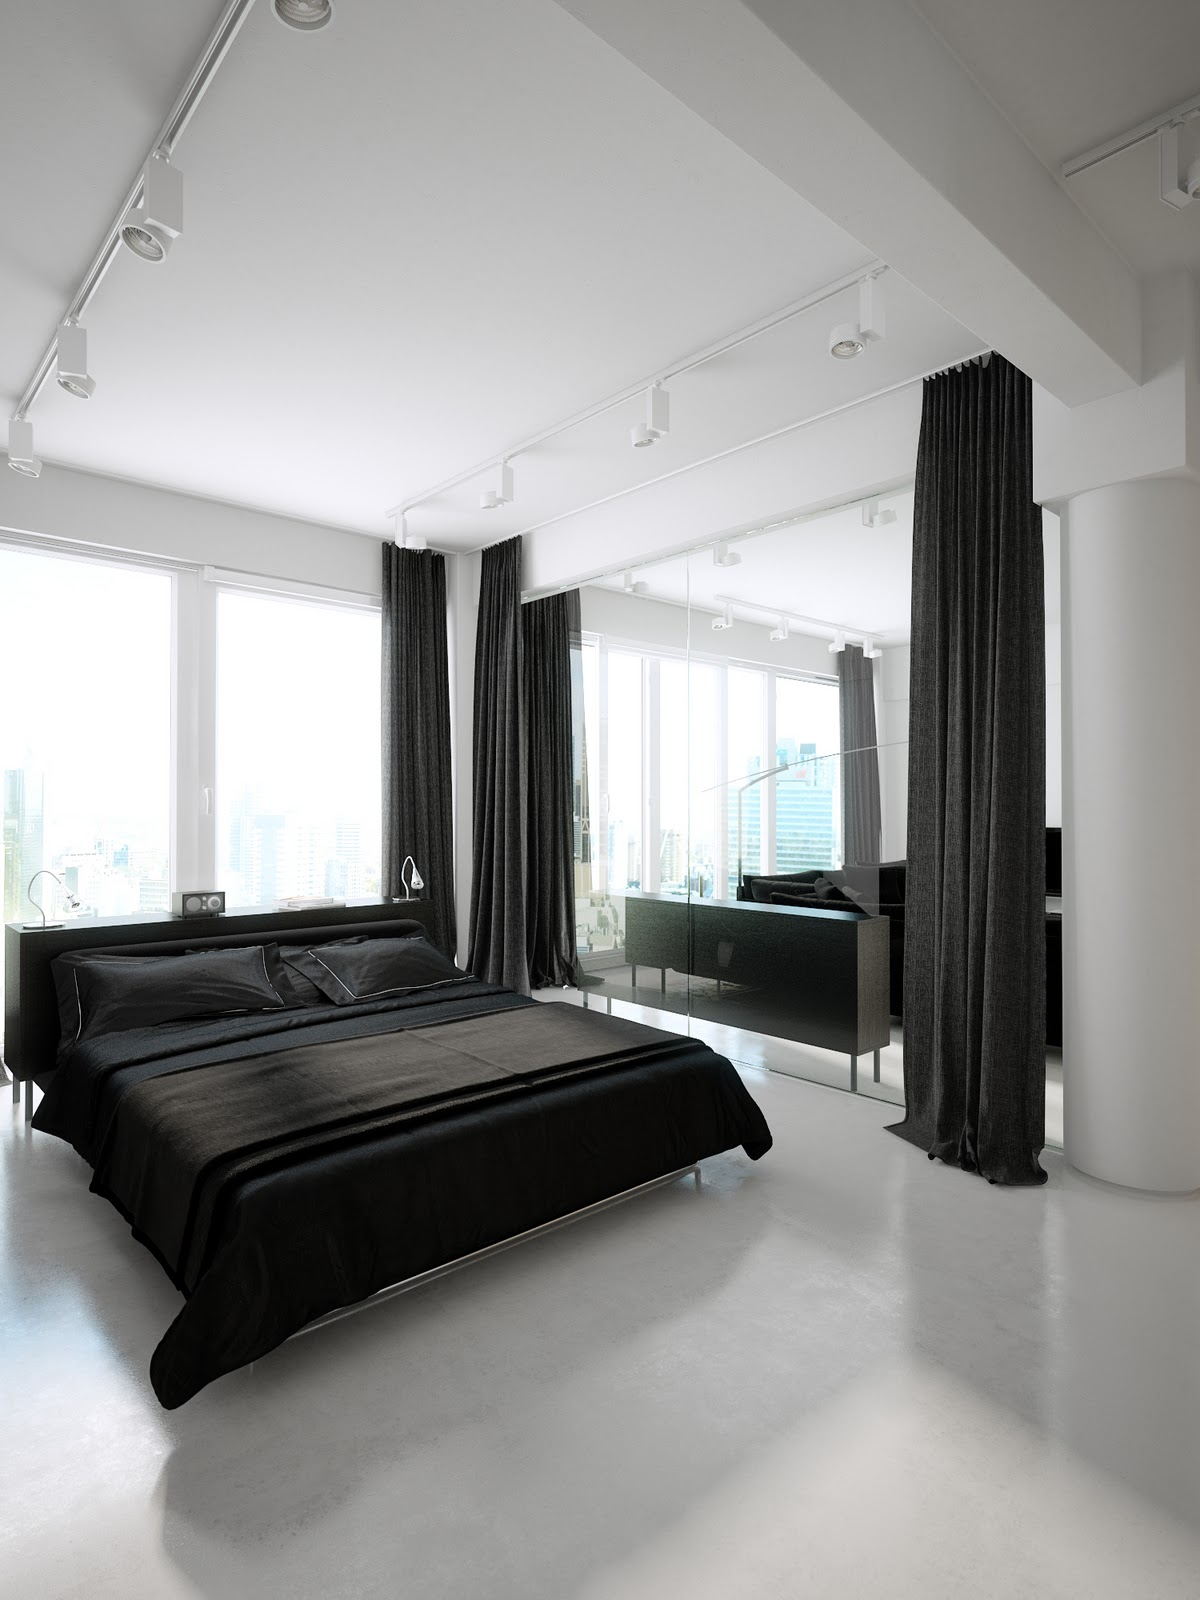 Black and white bedroom interior design ideas for Interior designs for bedroom